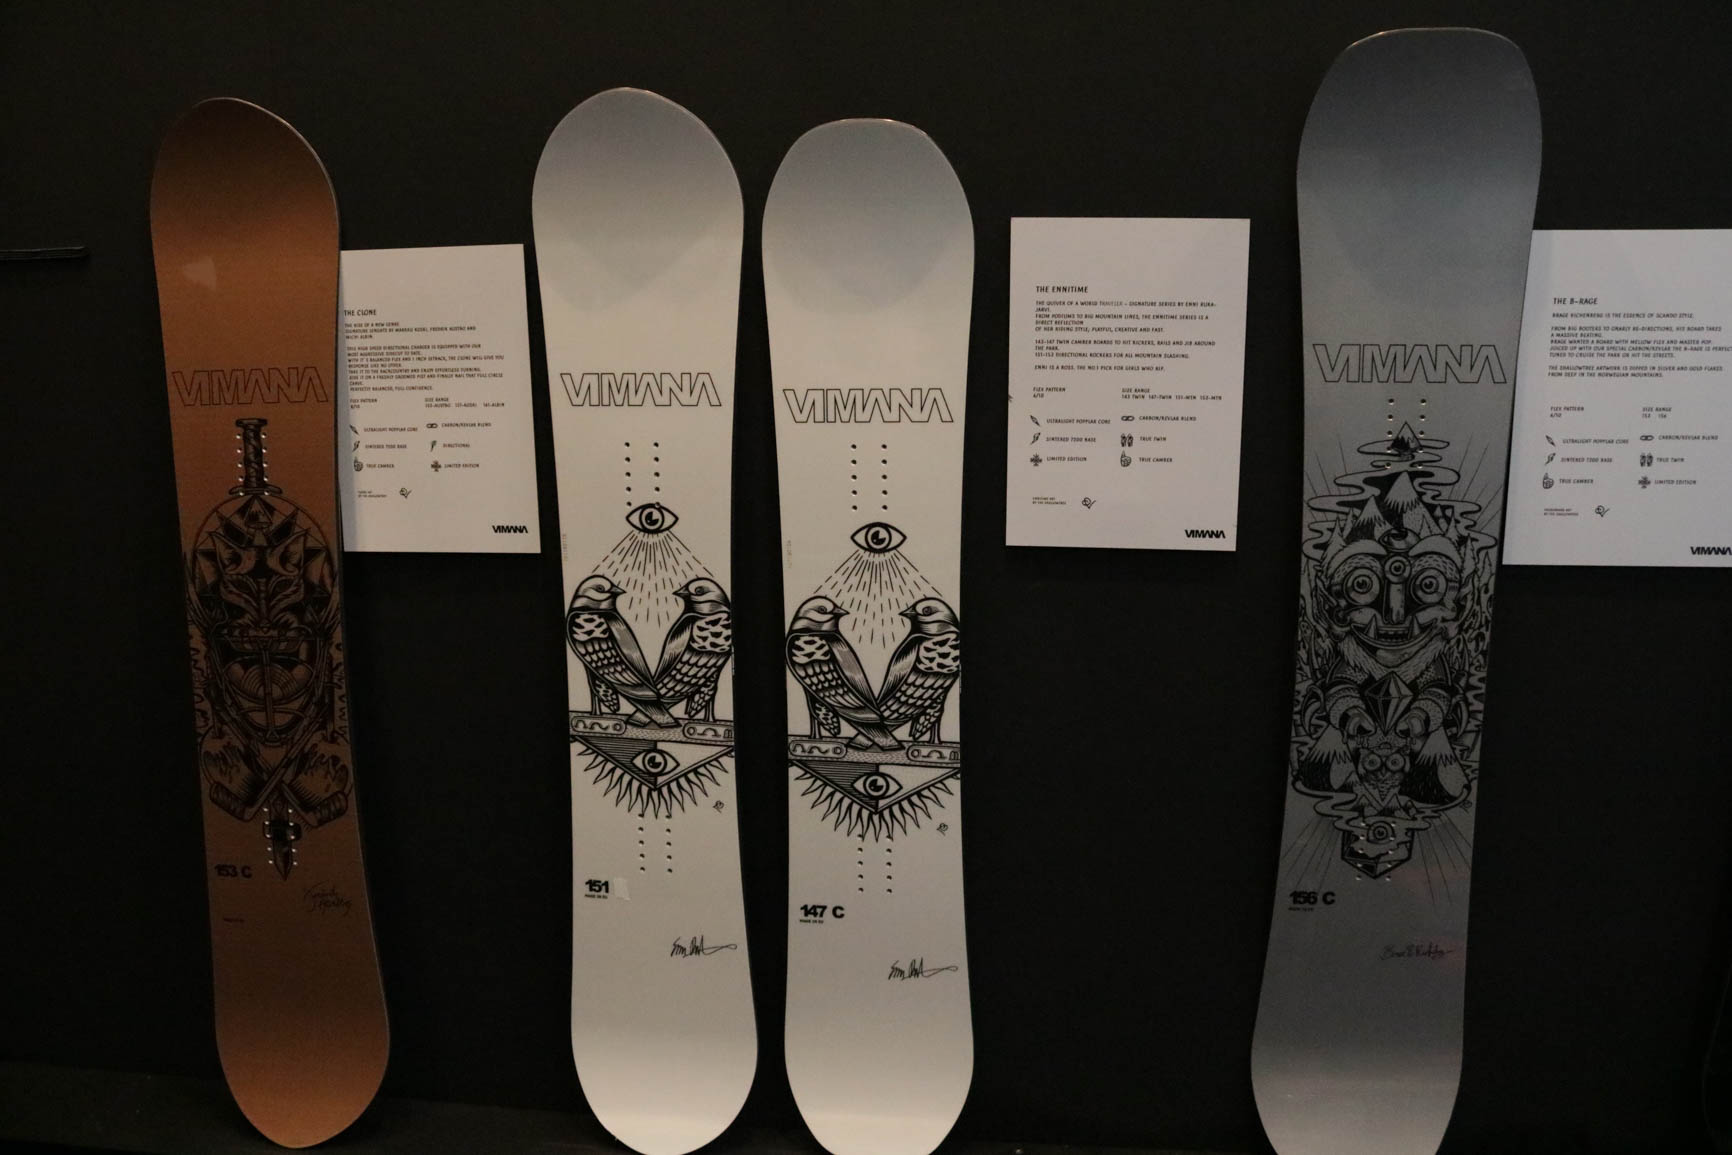 Vimana Snowboards 18/19 (von links nach rechts): The Clone, The Ennitime (Directional), The Ennitime (True Twin), The B-Rage